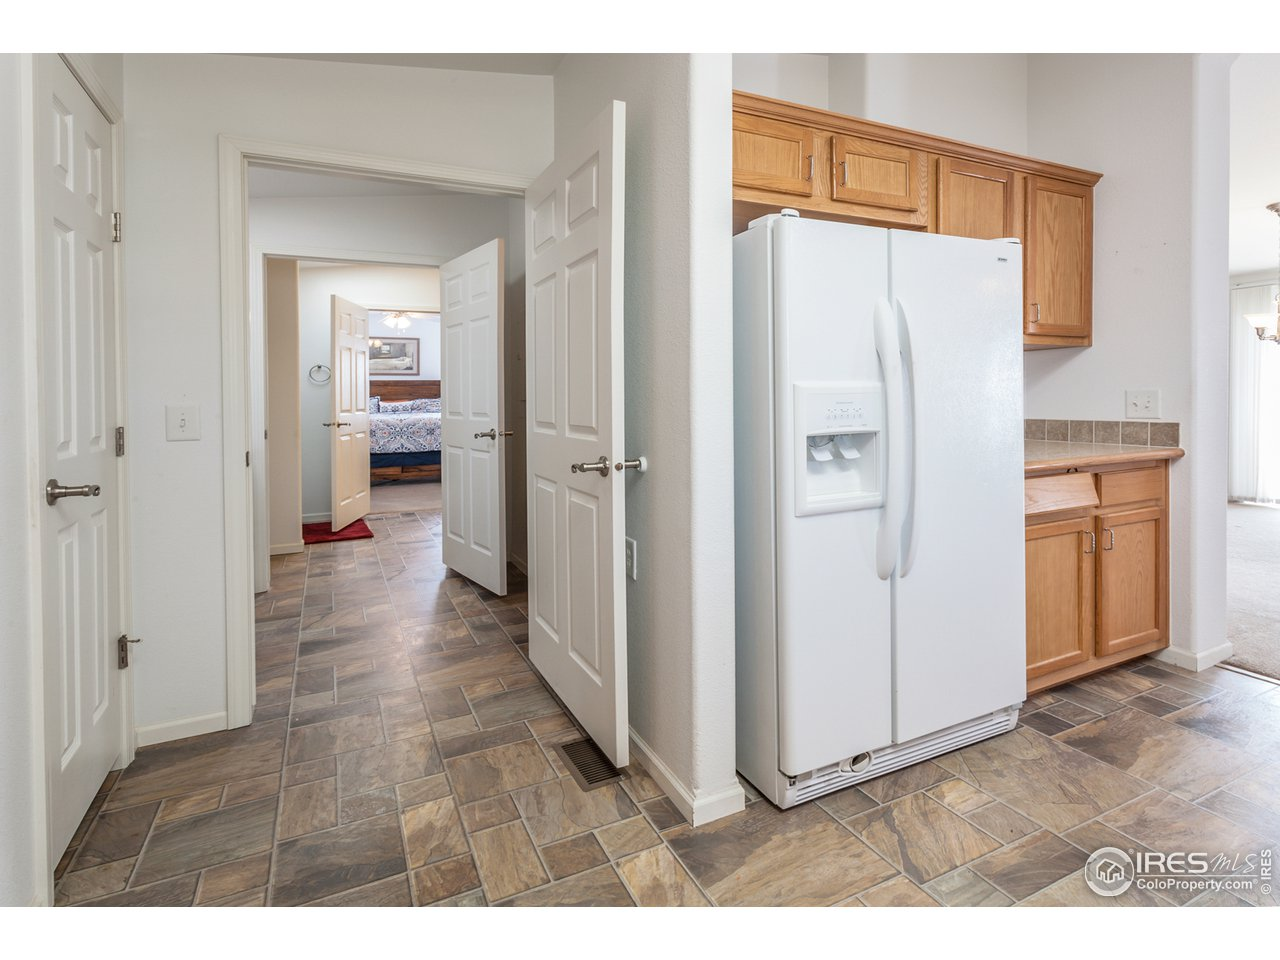 All appliances stay including refrigerator